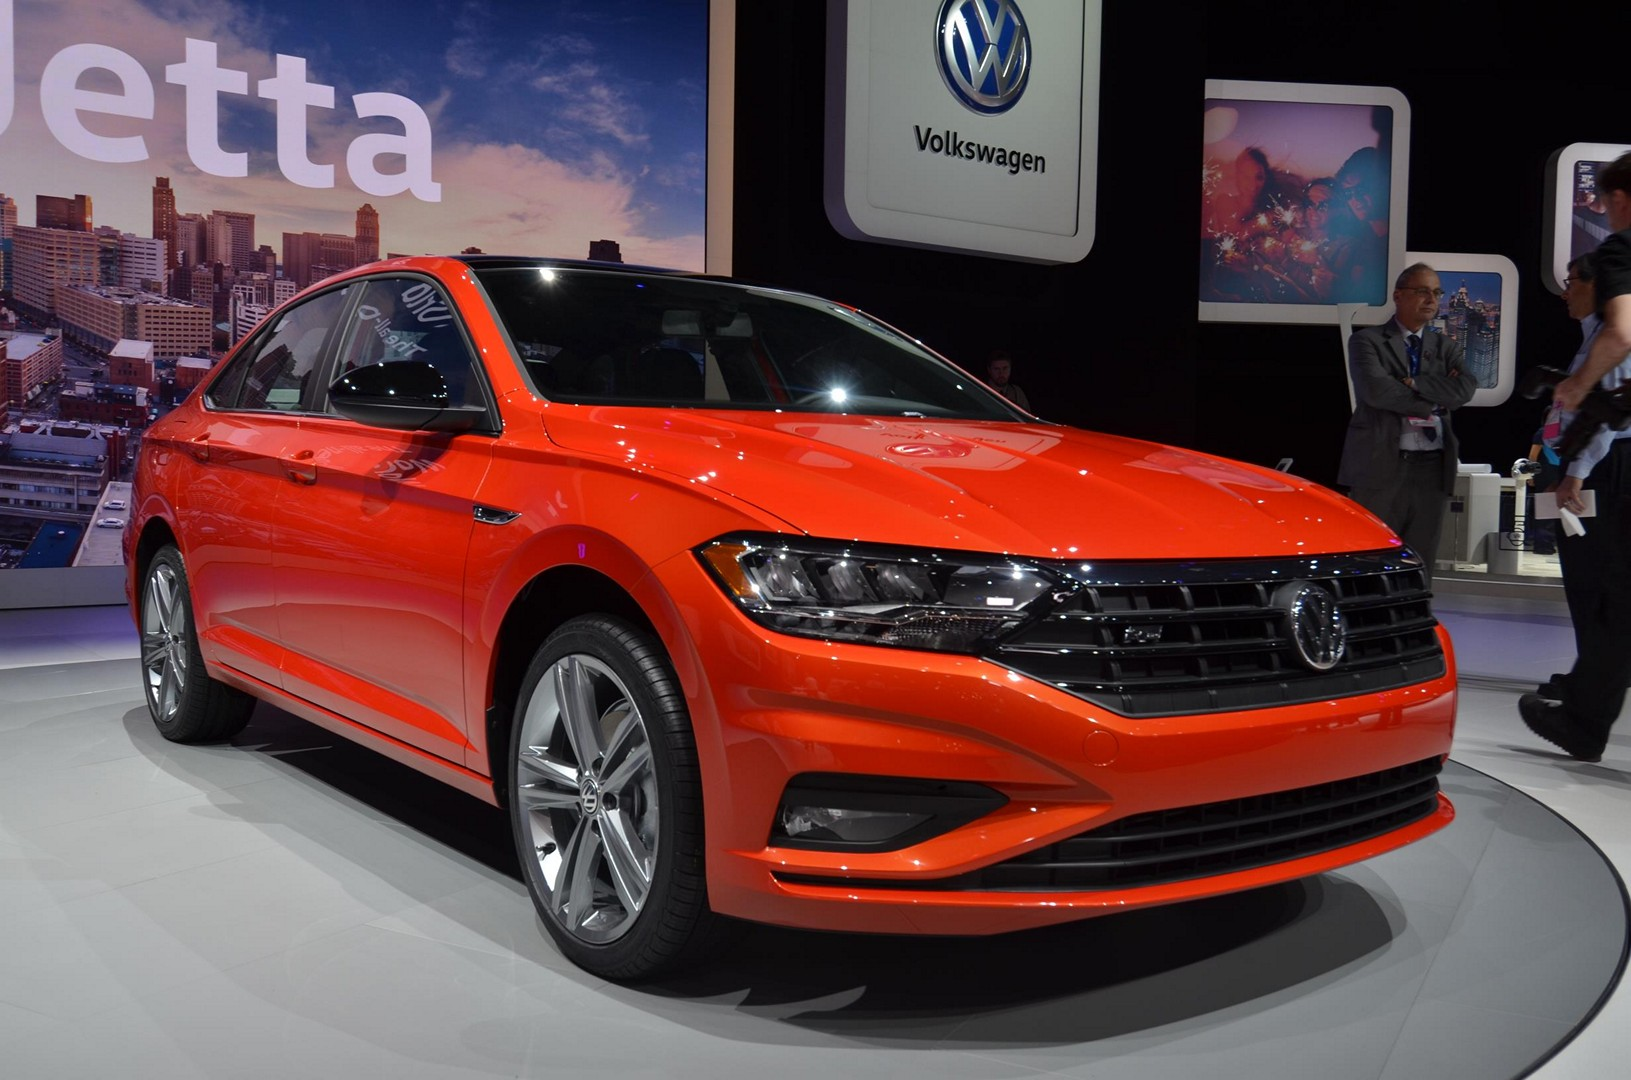 Volkswagen takes wraps off its latest Jetta